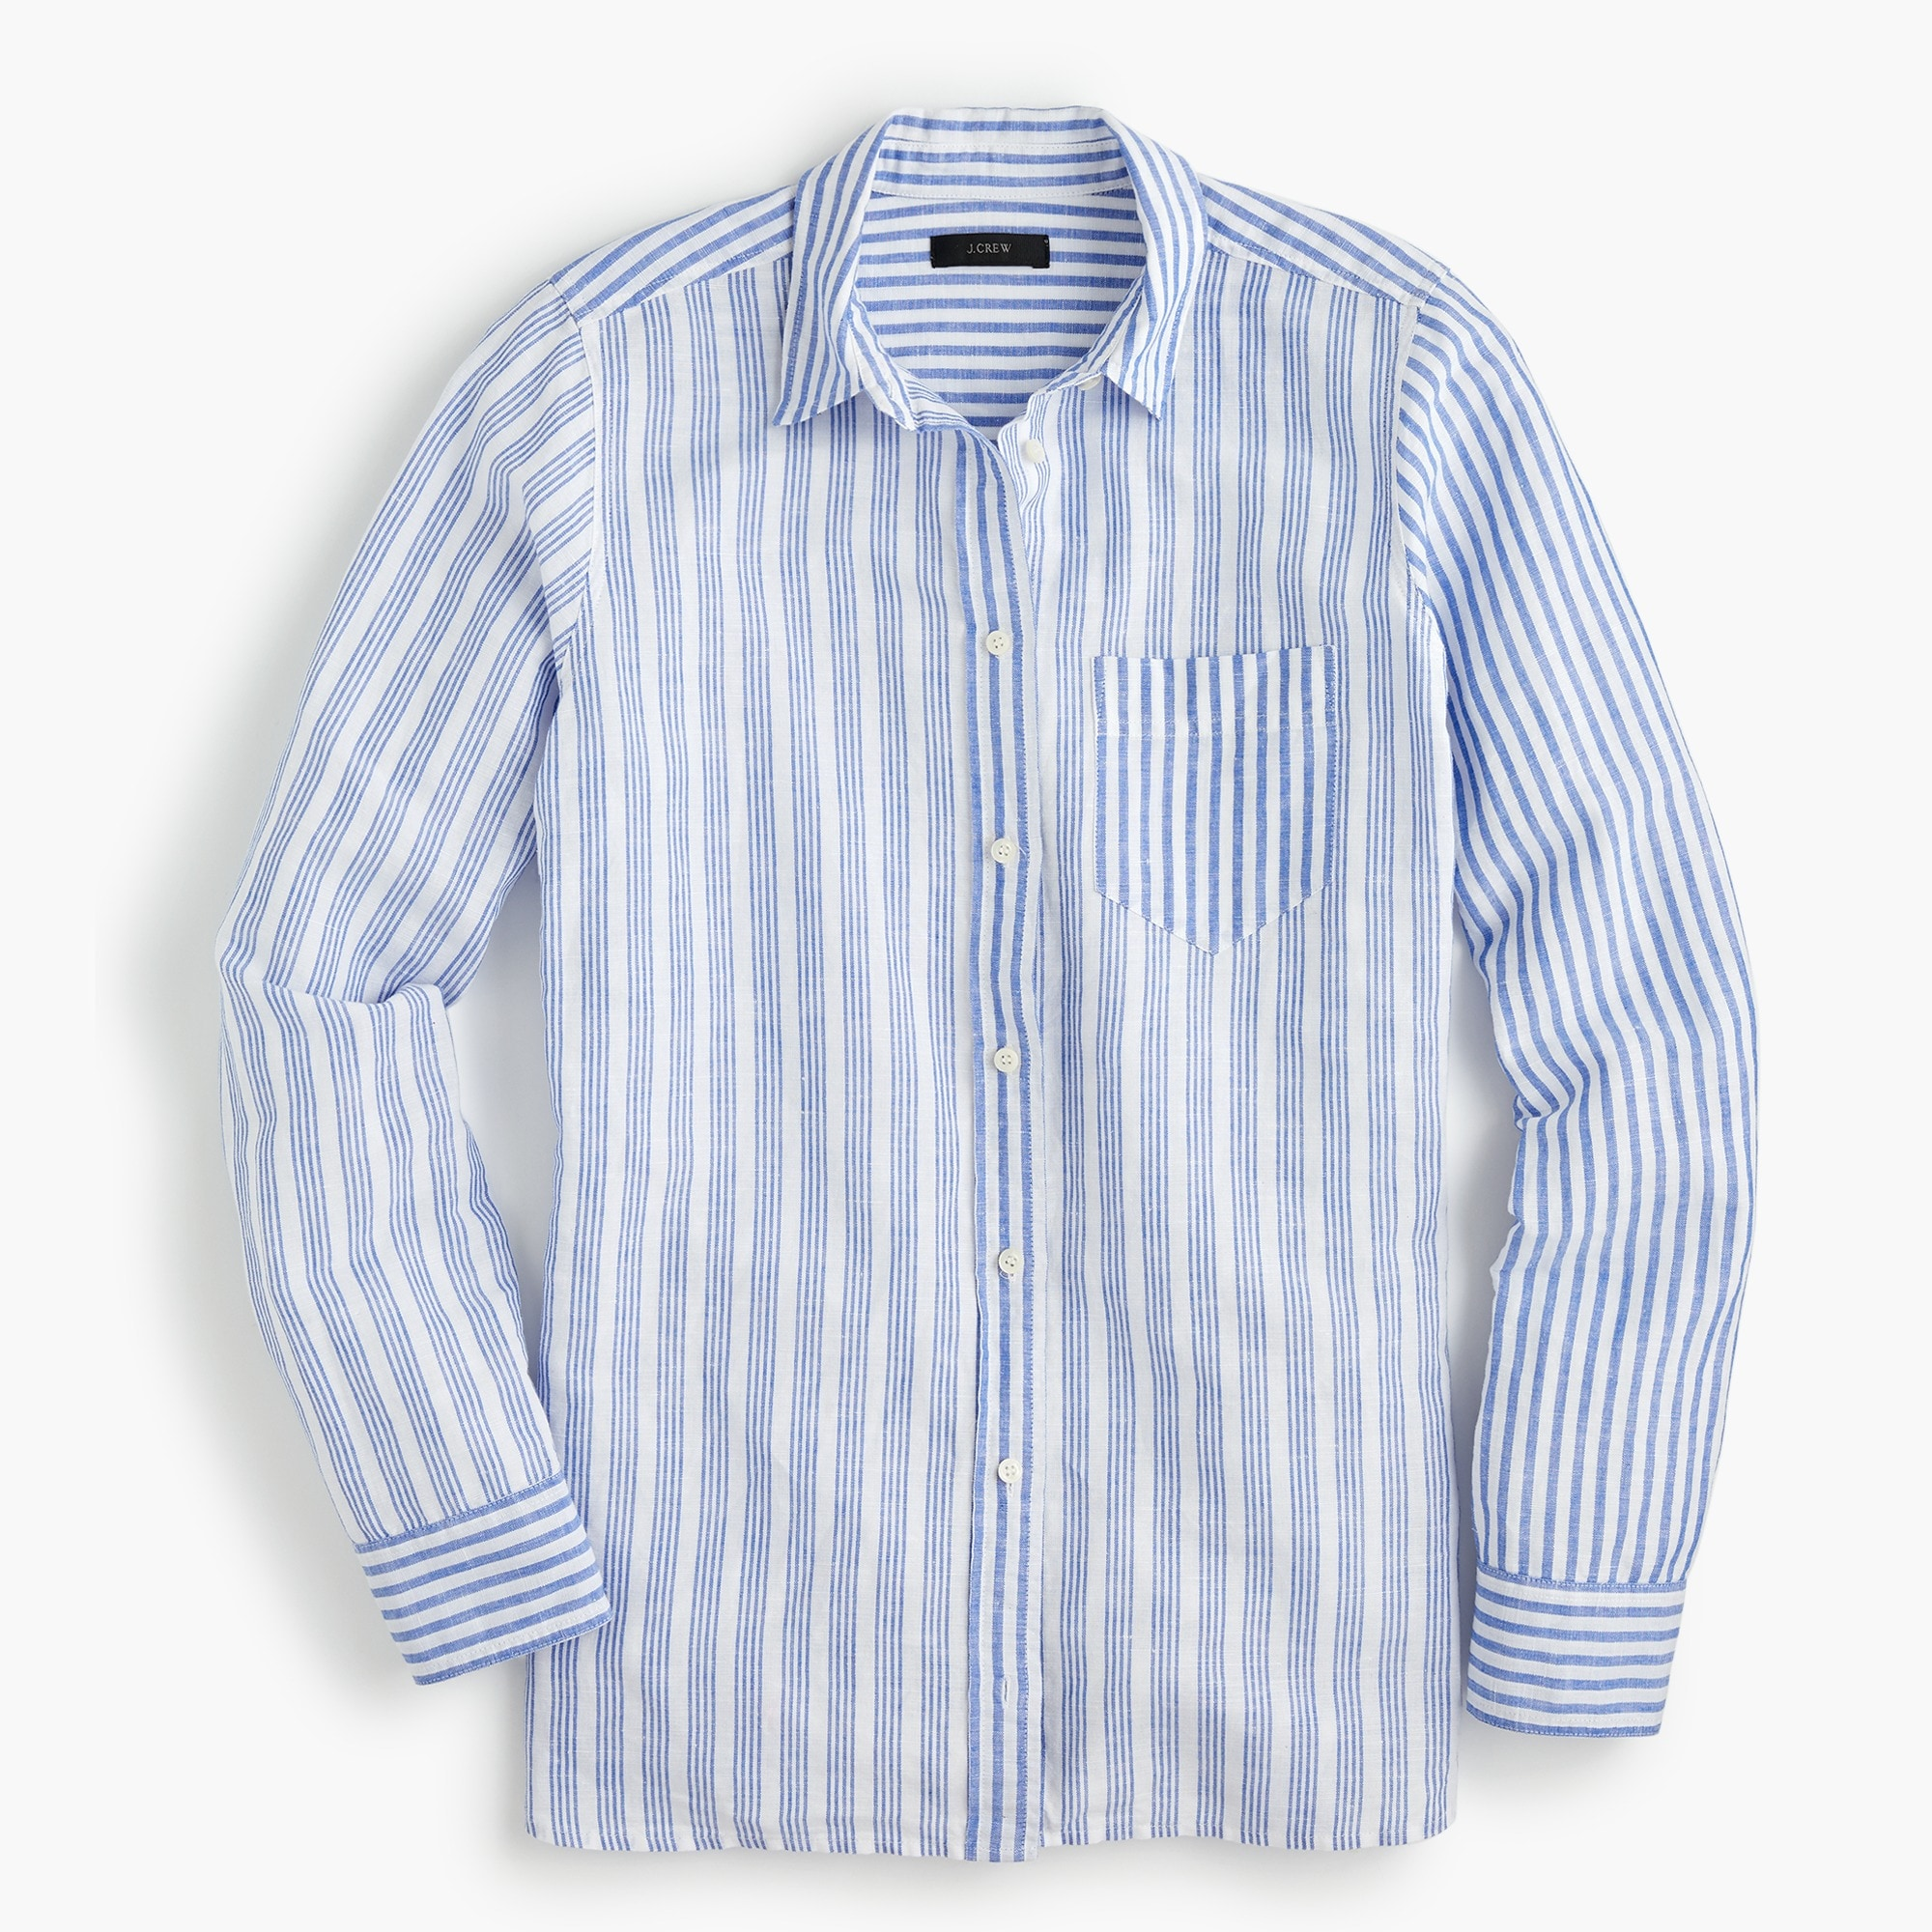 Image 1 for Relaxed boy shirt in cotton linen mixed stripe